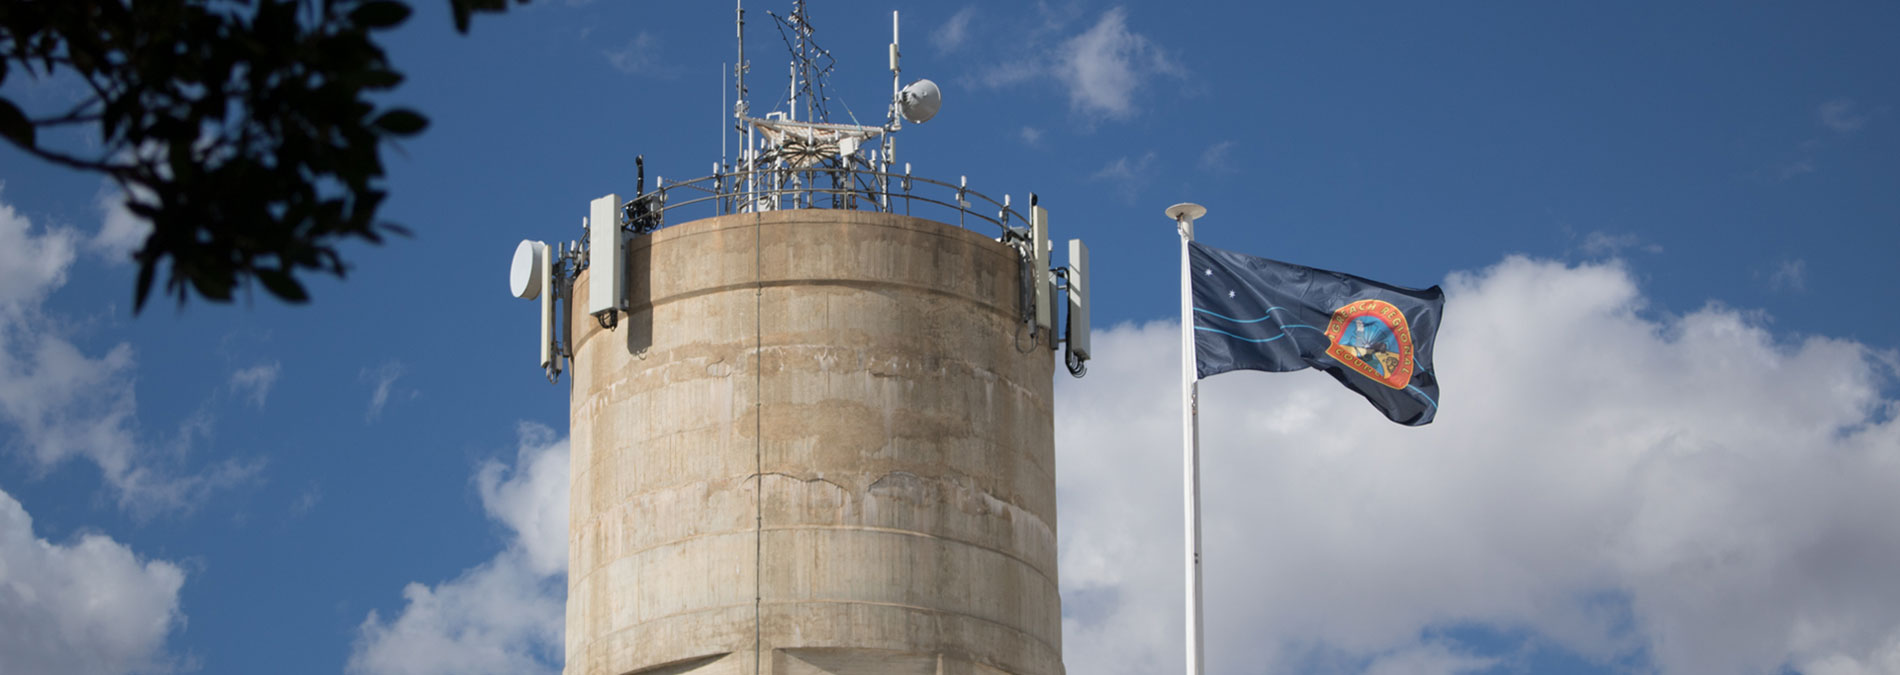 Image of a silo in Longreach